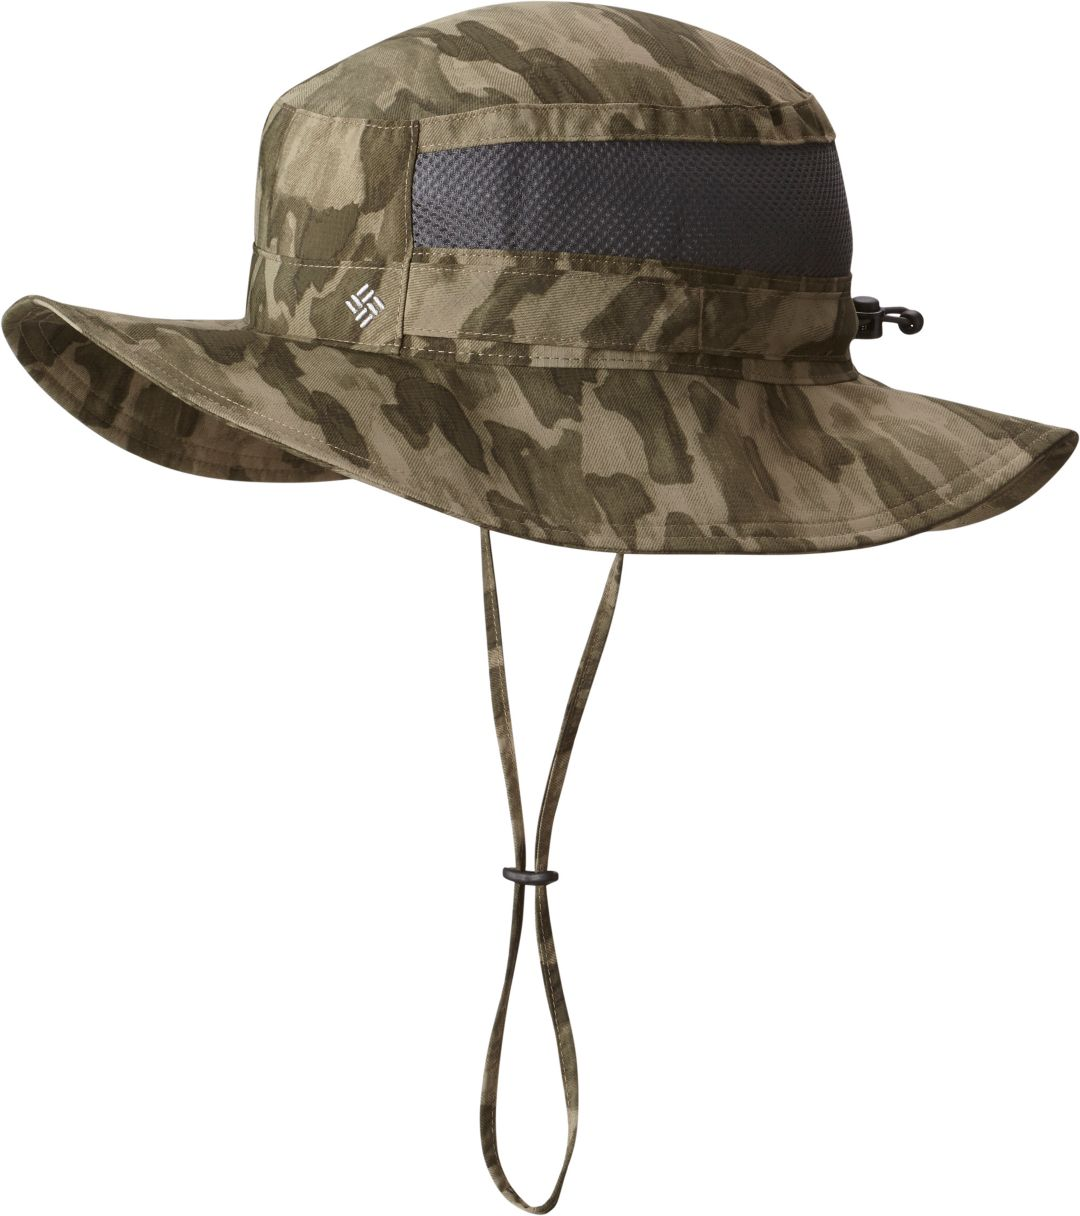 e69292c8 Columbia Men's Bora Bora Printed Booney Hat | Field & Stream